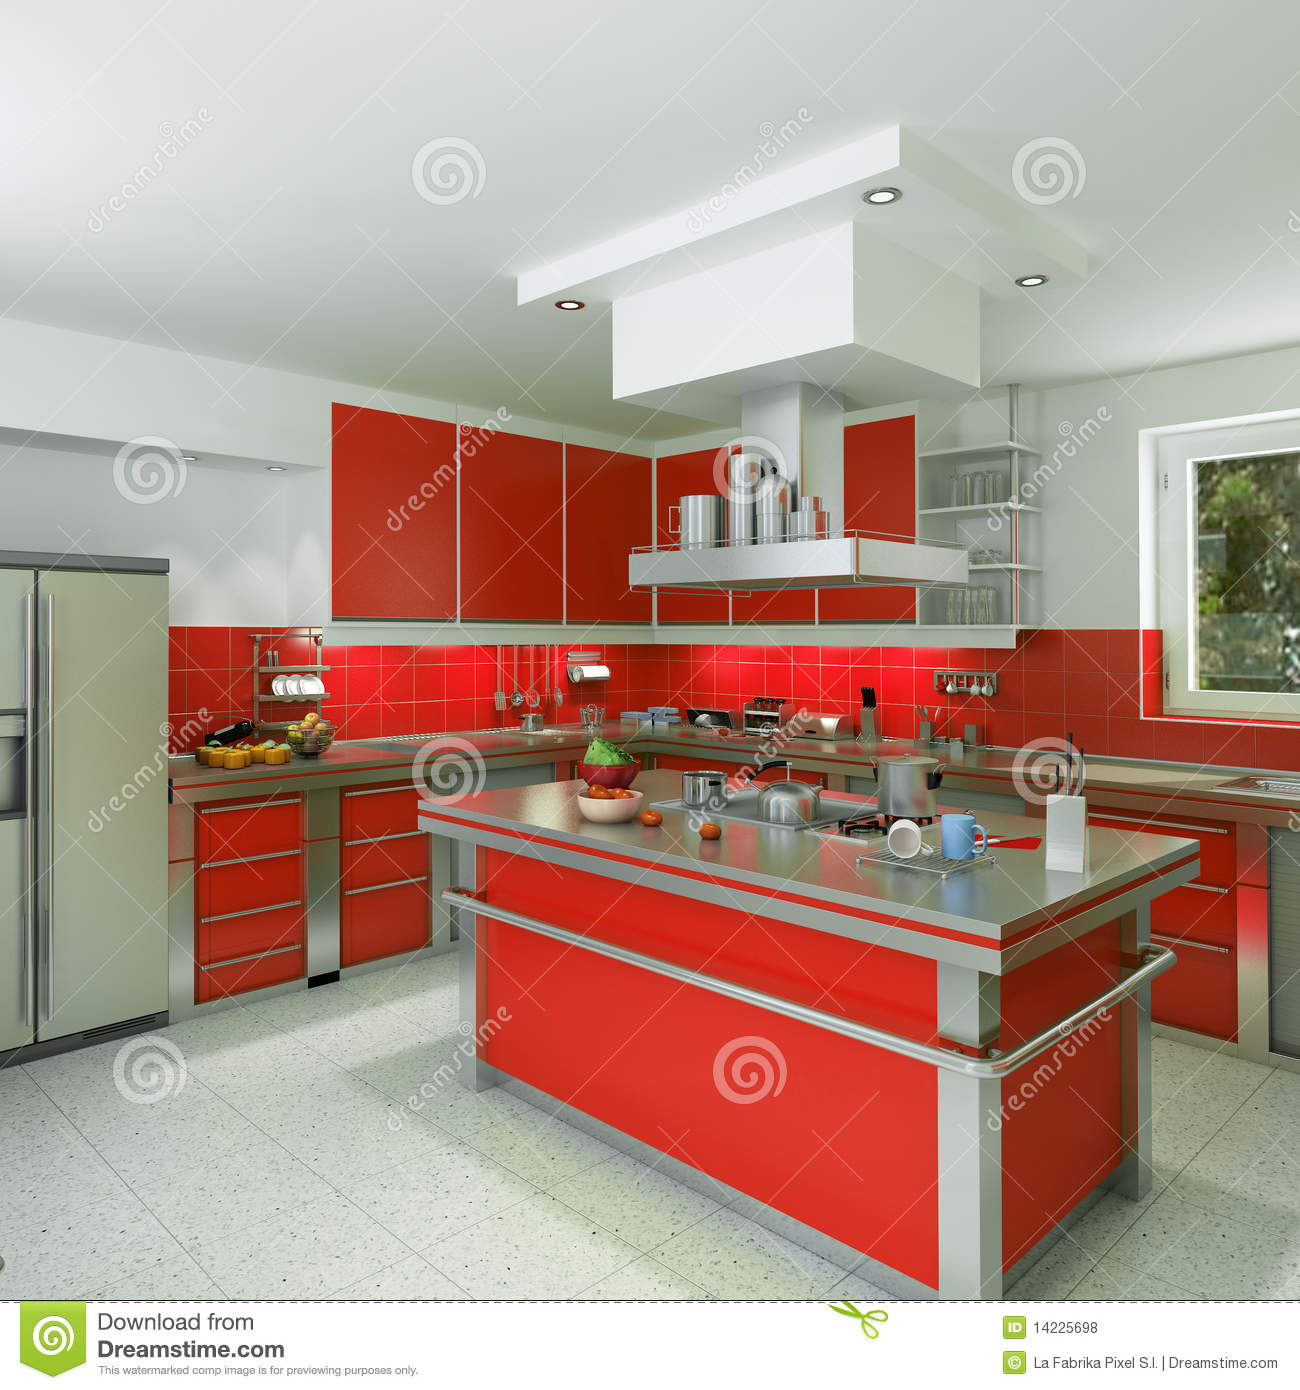 Cuisine rouge moderne photos libres de droits image for Cuisine rouge 3d